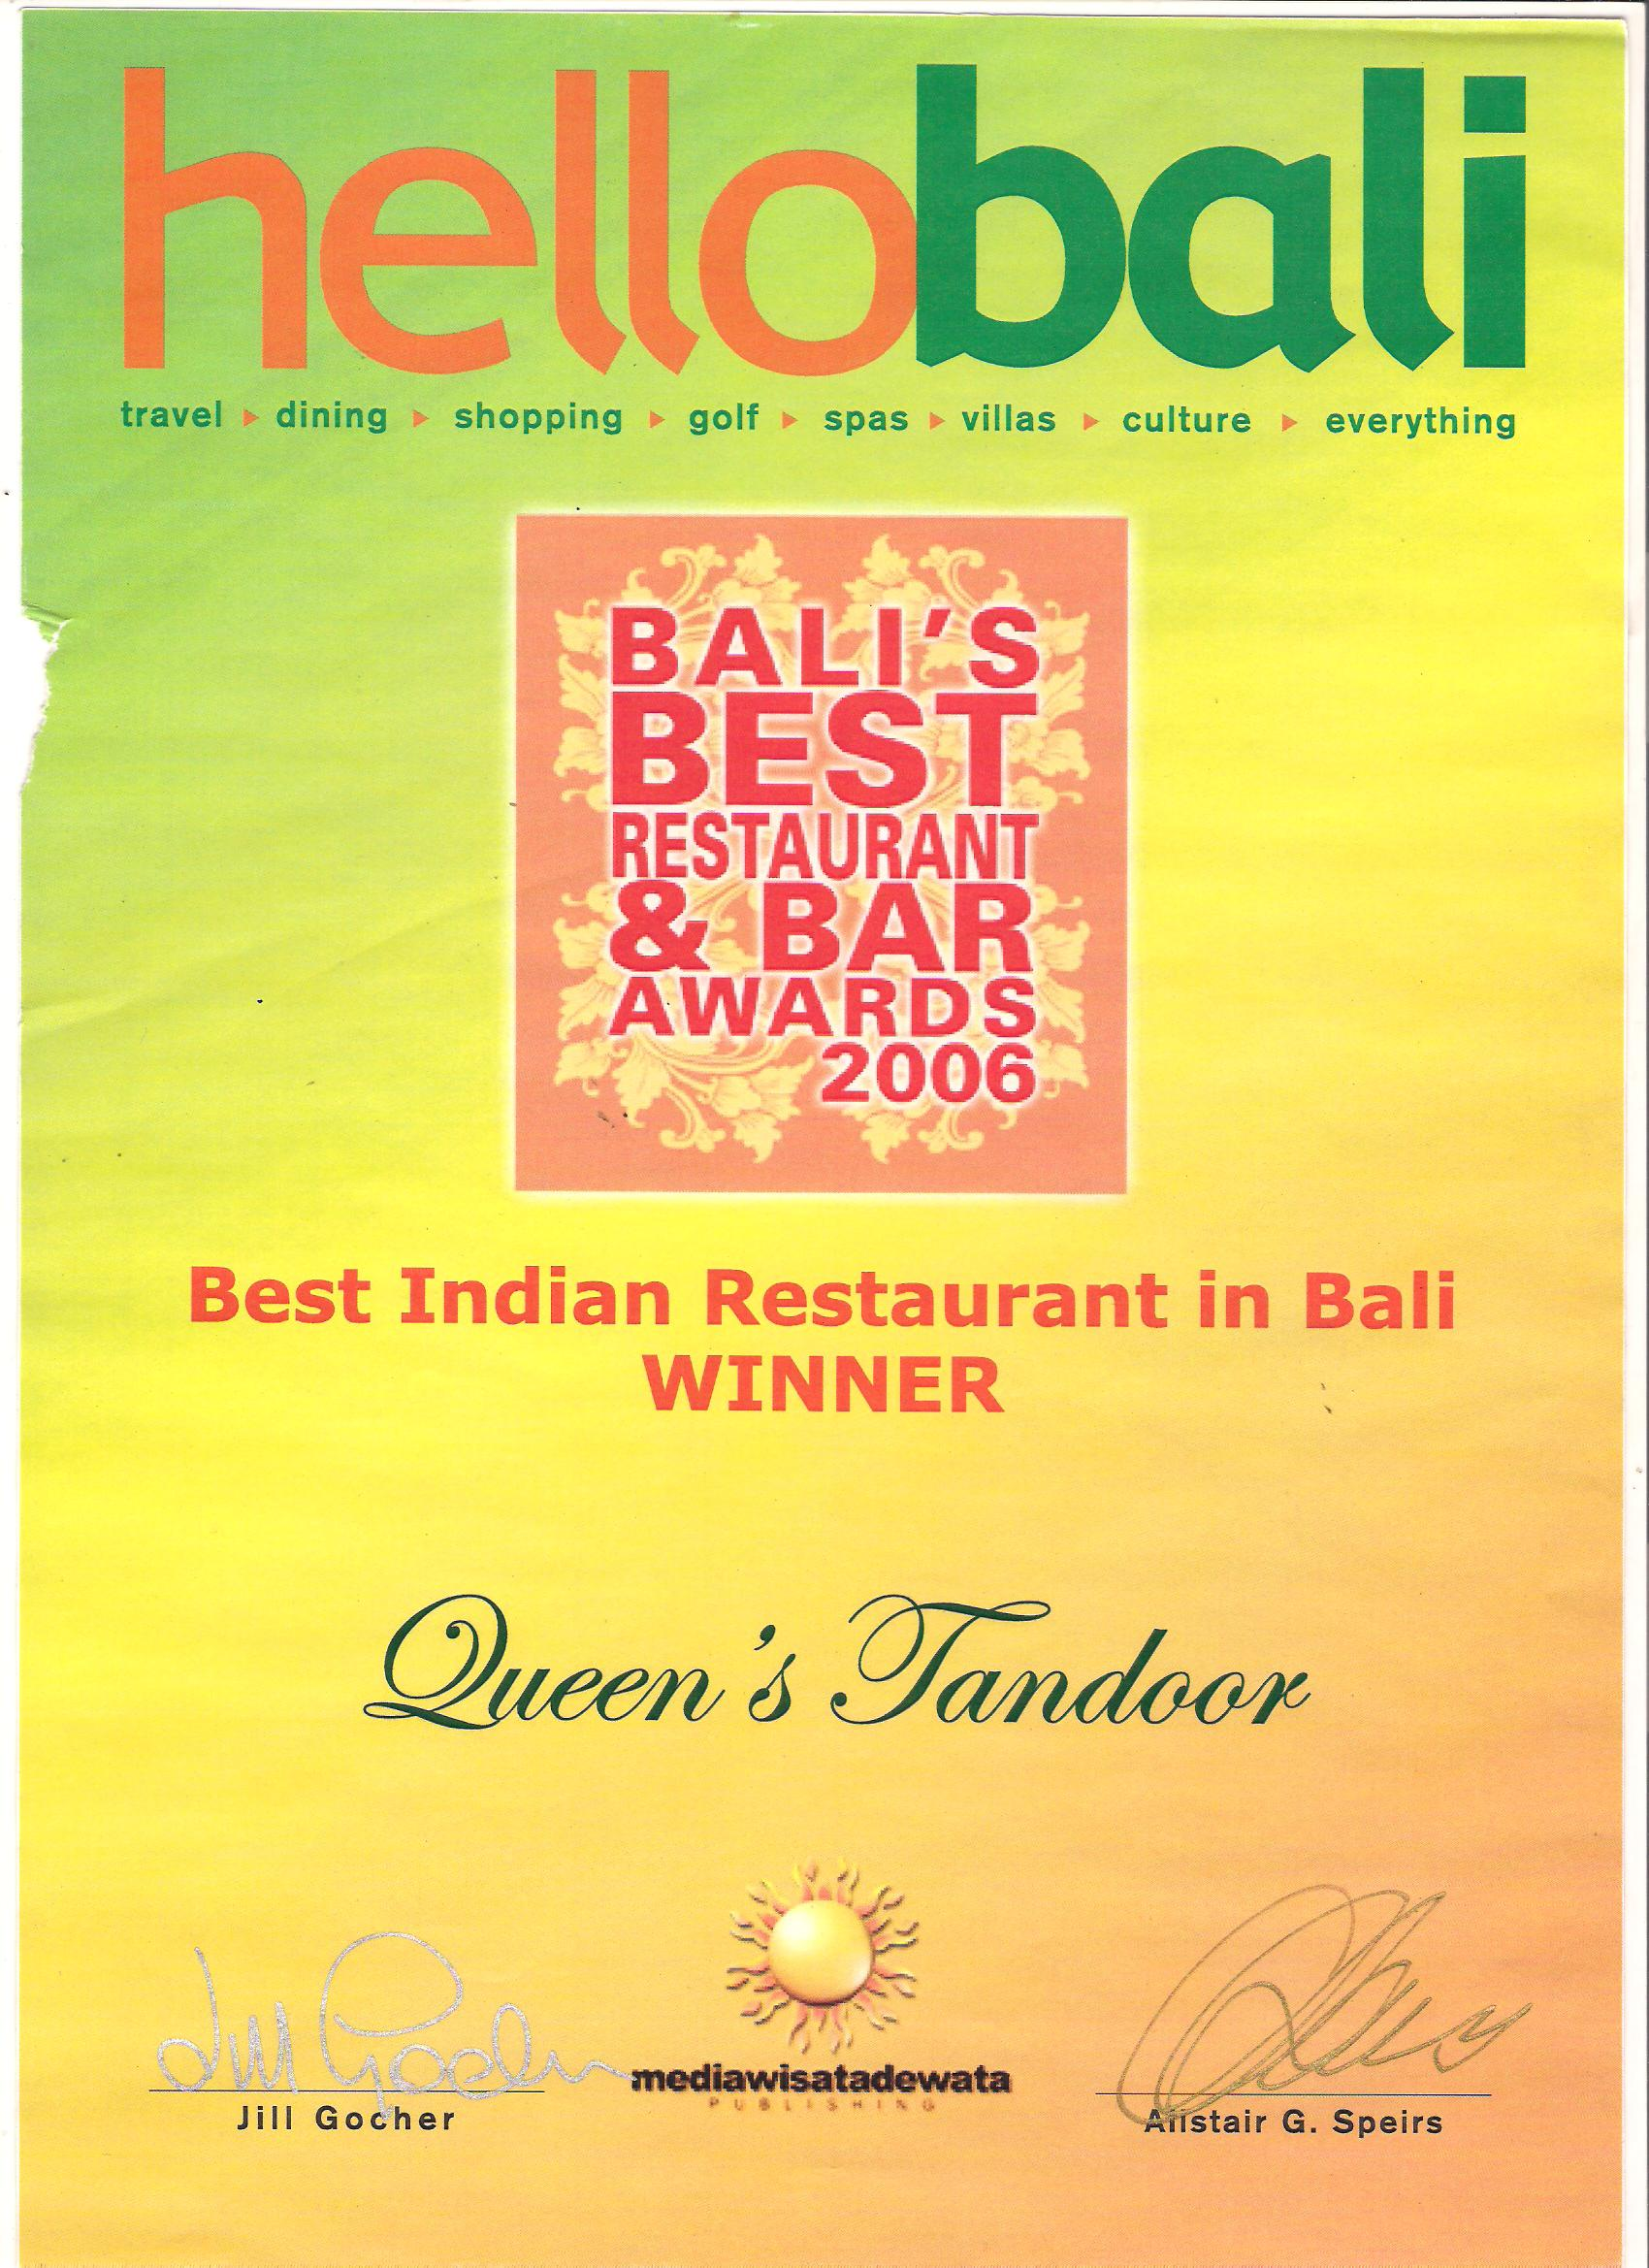 Hello Bali Award 2006 - Best Indian Restaurant in Bali